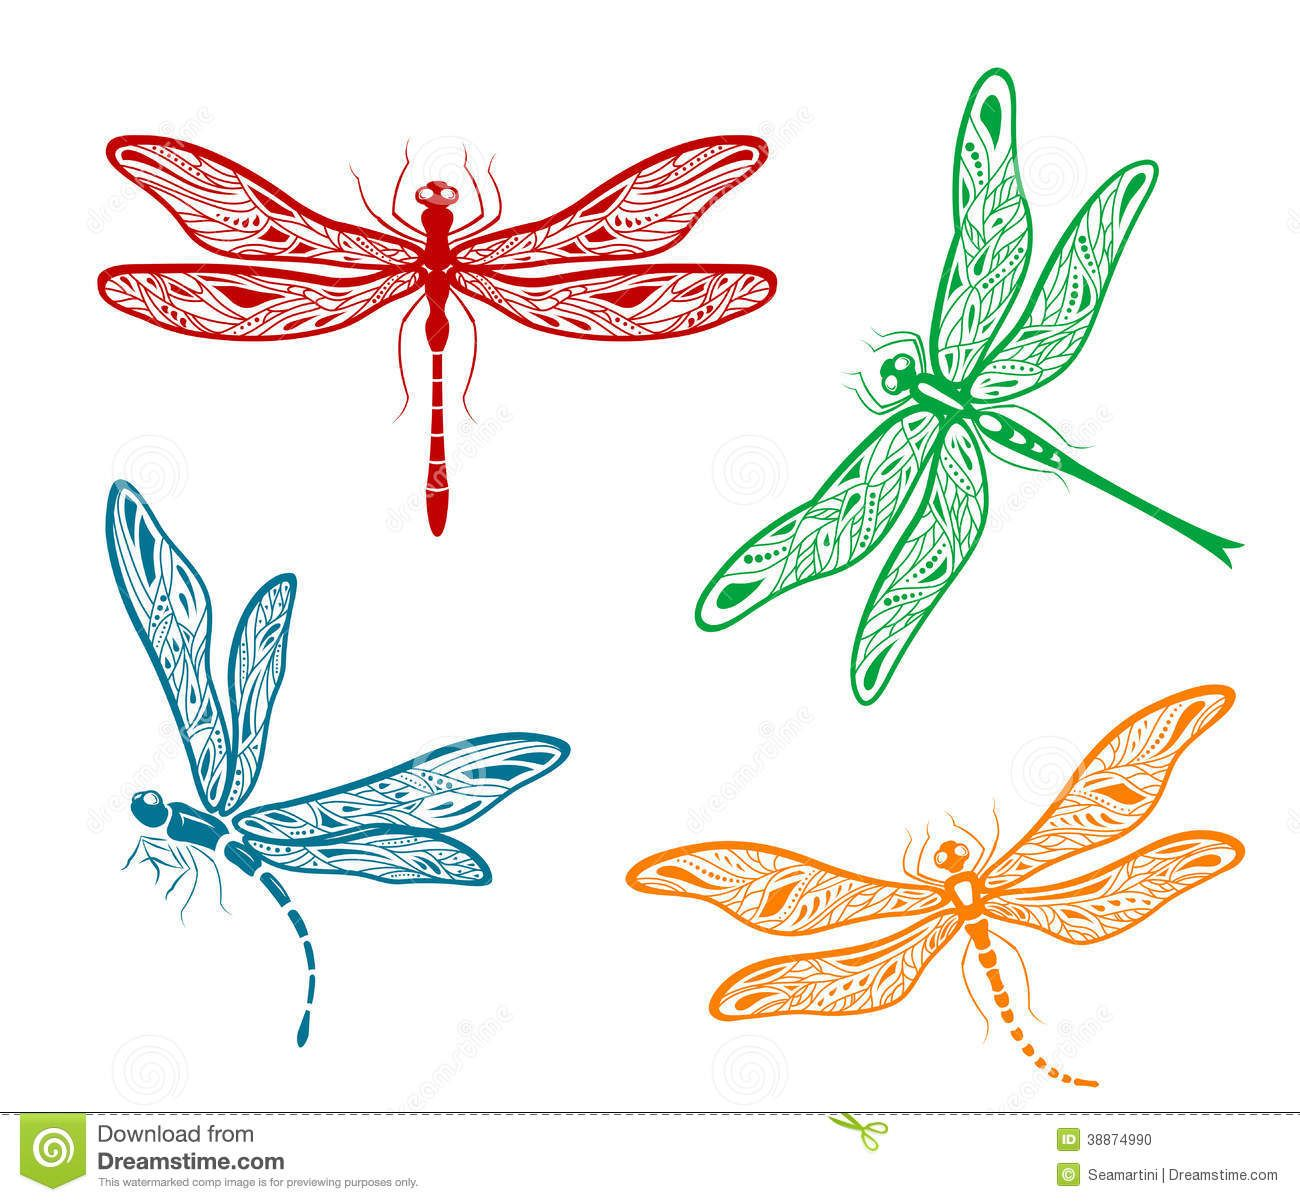 Dragonfly vector clipart picture Dragonfly vector | Set of four different pretty dainty dragonfly ... picture